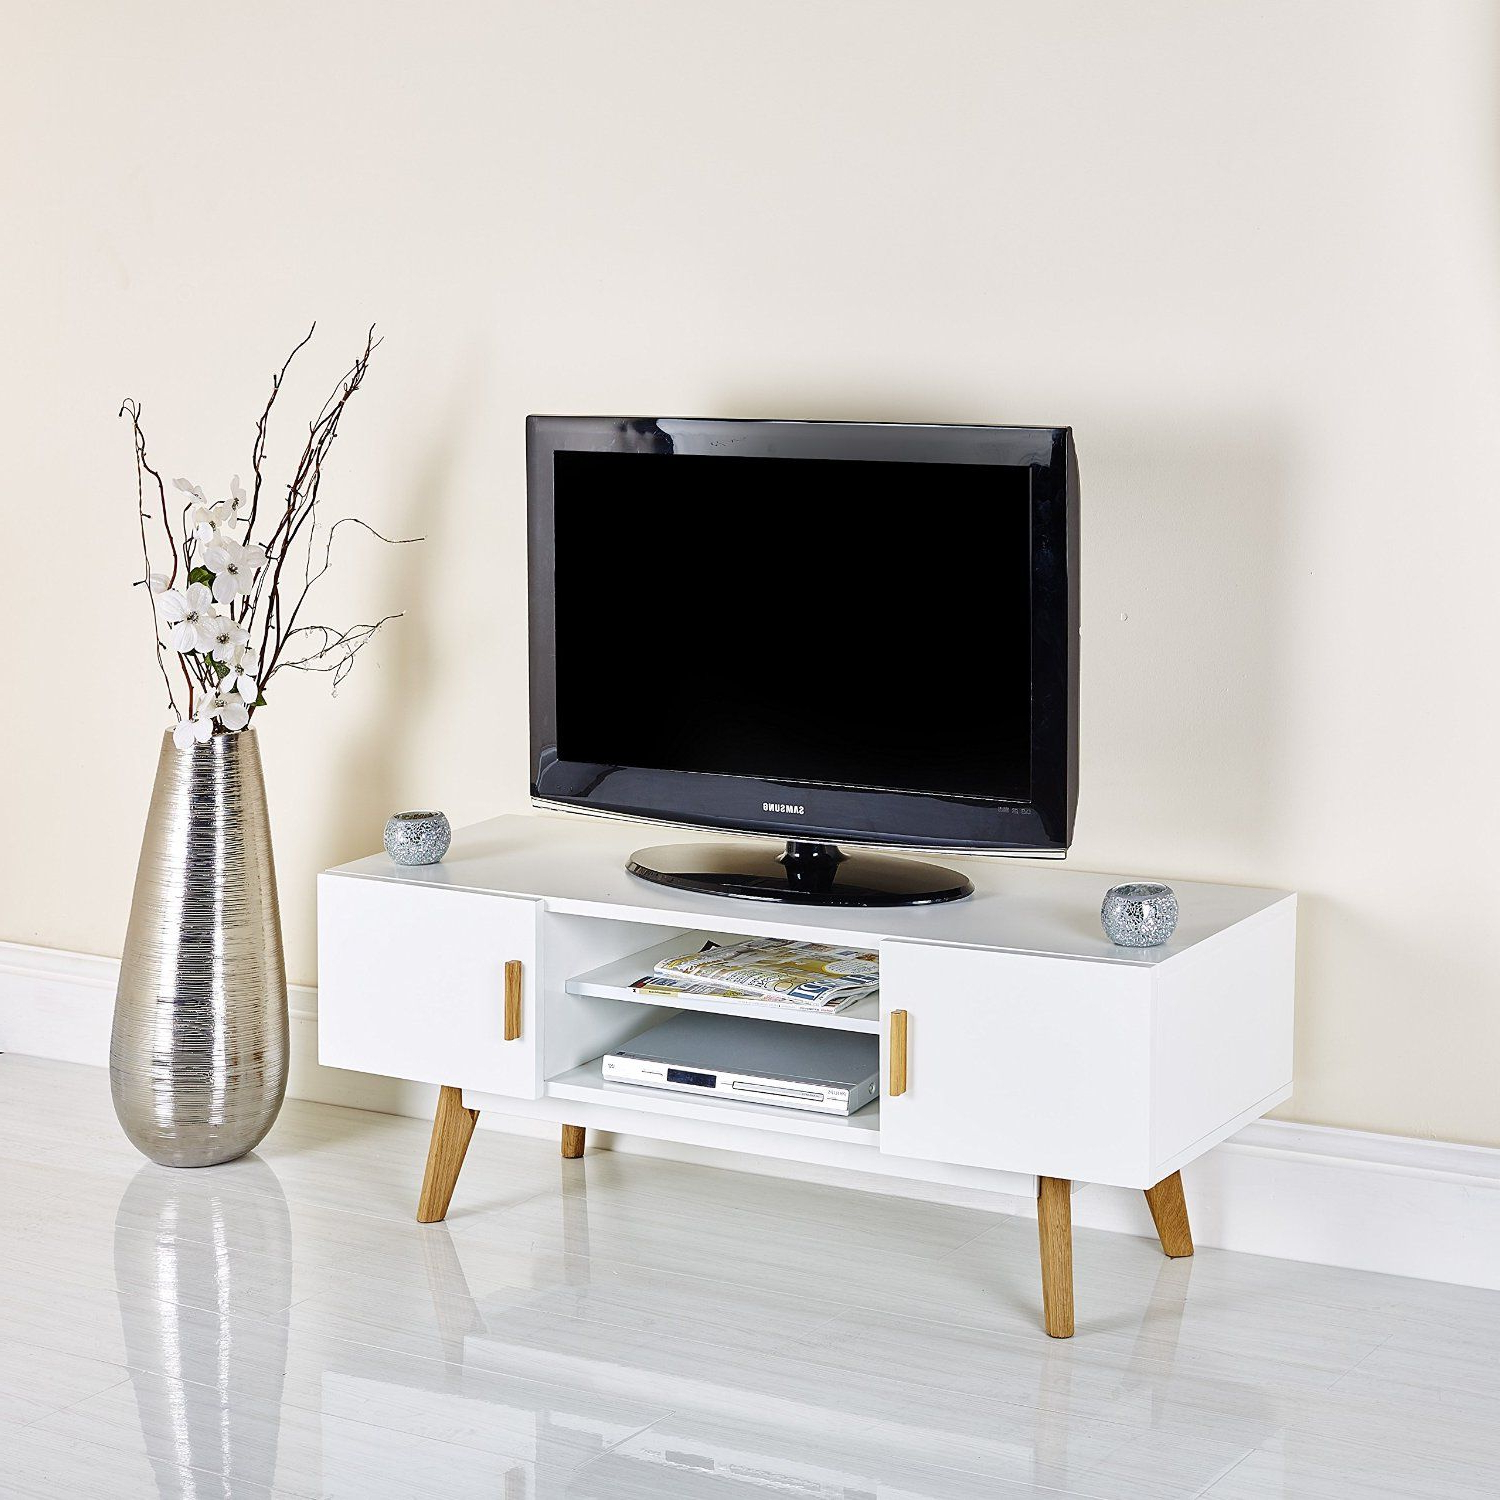 "Most Current Scandinavian White Retro Tv Stand For 32"" To 55"" Television Intended For Scandinavian Tv Stands (View 9 of 20)"